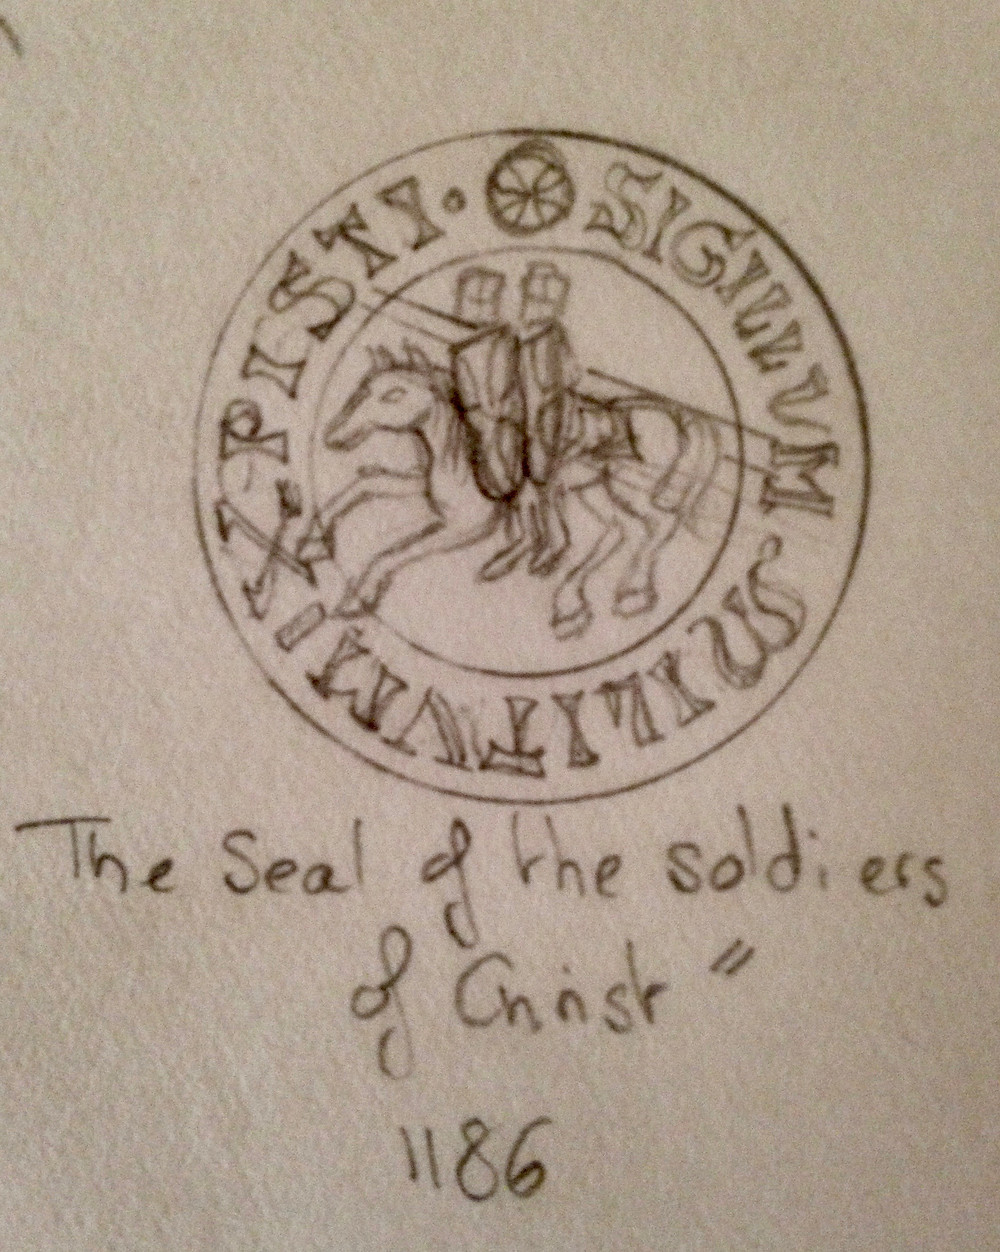 Seal of the Soldiers of Christ- Sketch by Vie